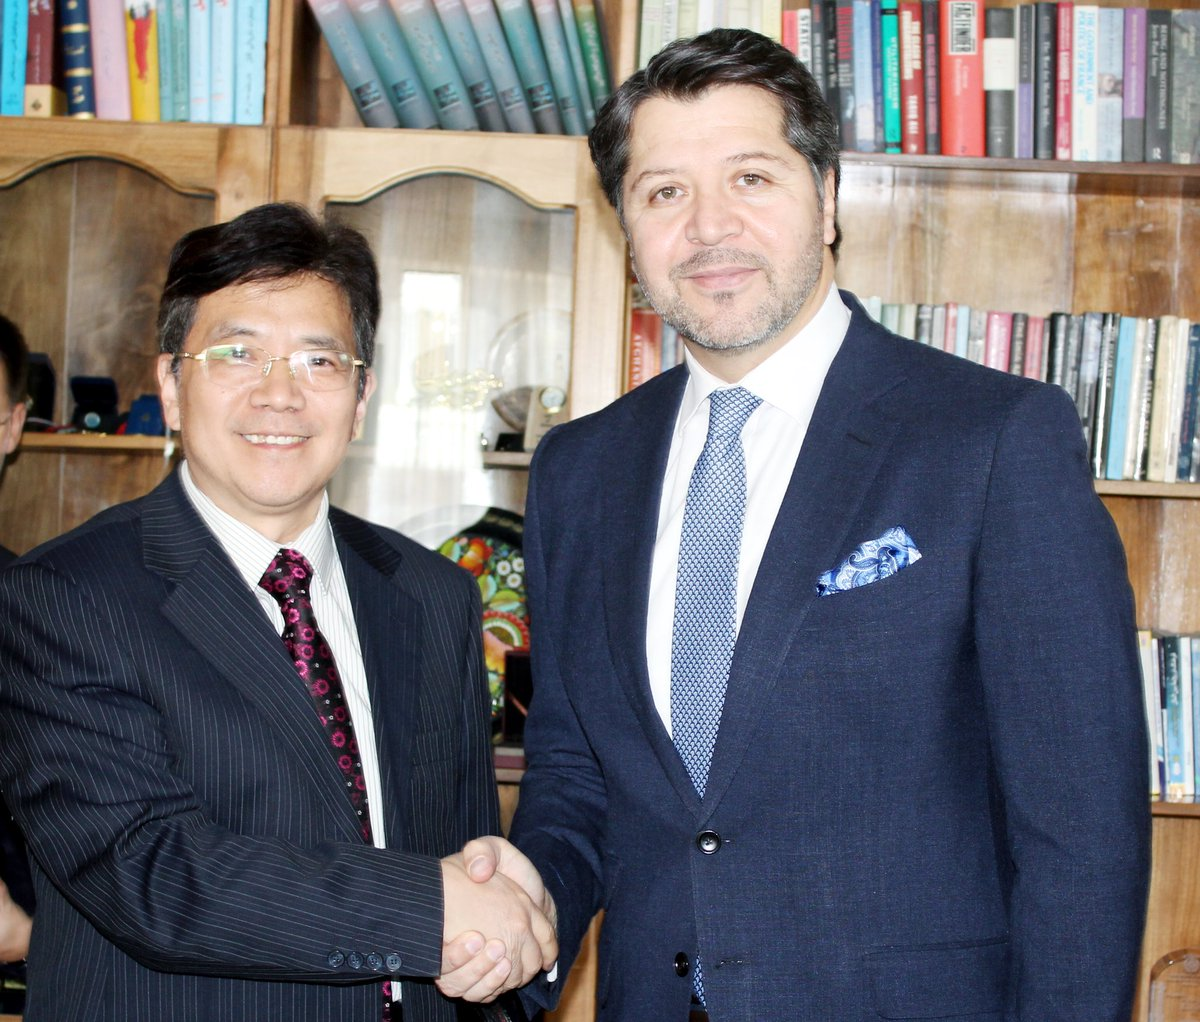 Good to welcome Amb Deng Xijun, Chinas Special Envoy for Afghanistan, to discuss the results of my recent visit to China, upcoming SCO Summit, regional engagement and peace.